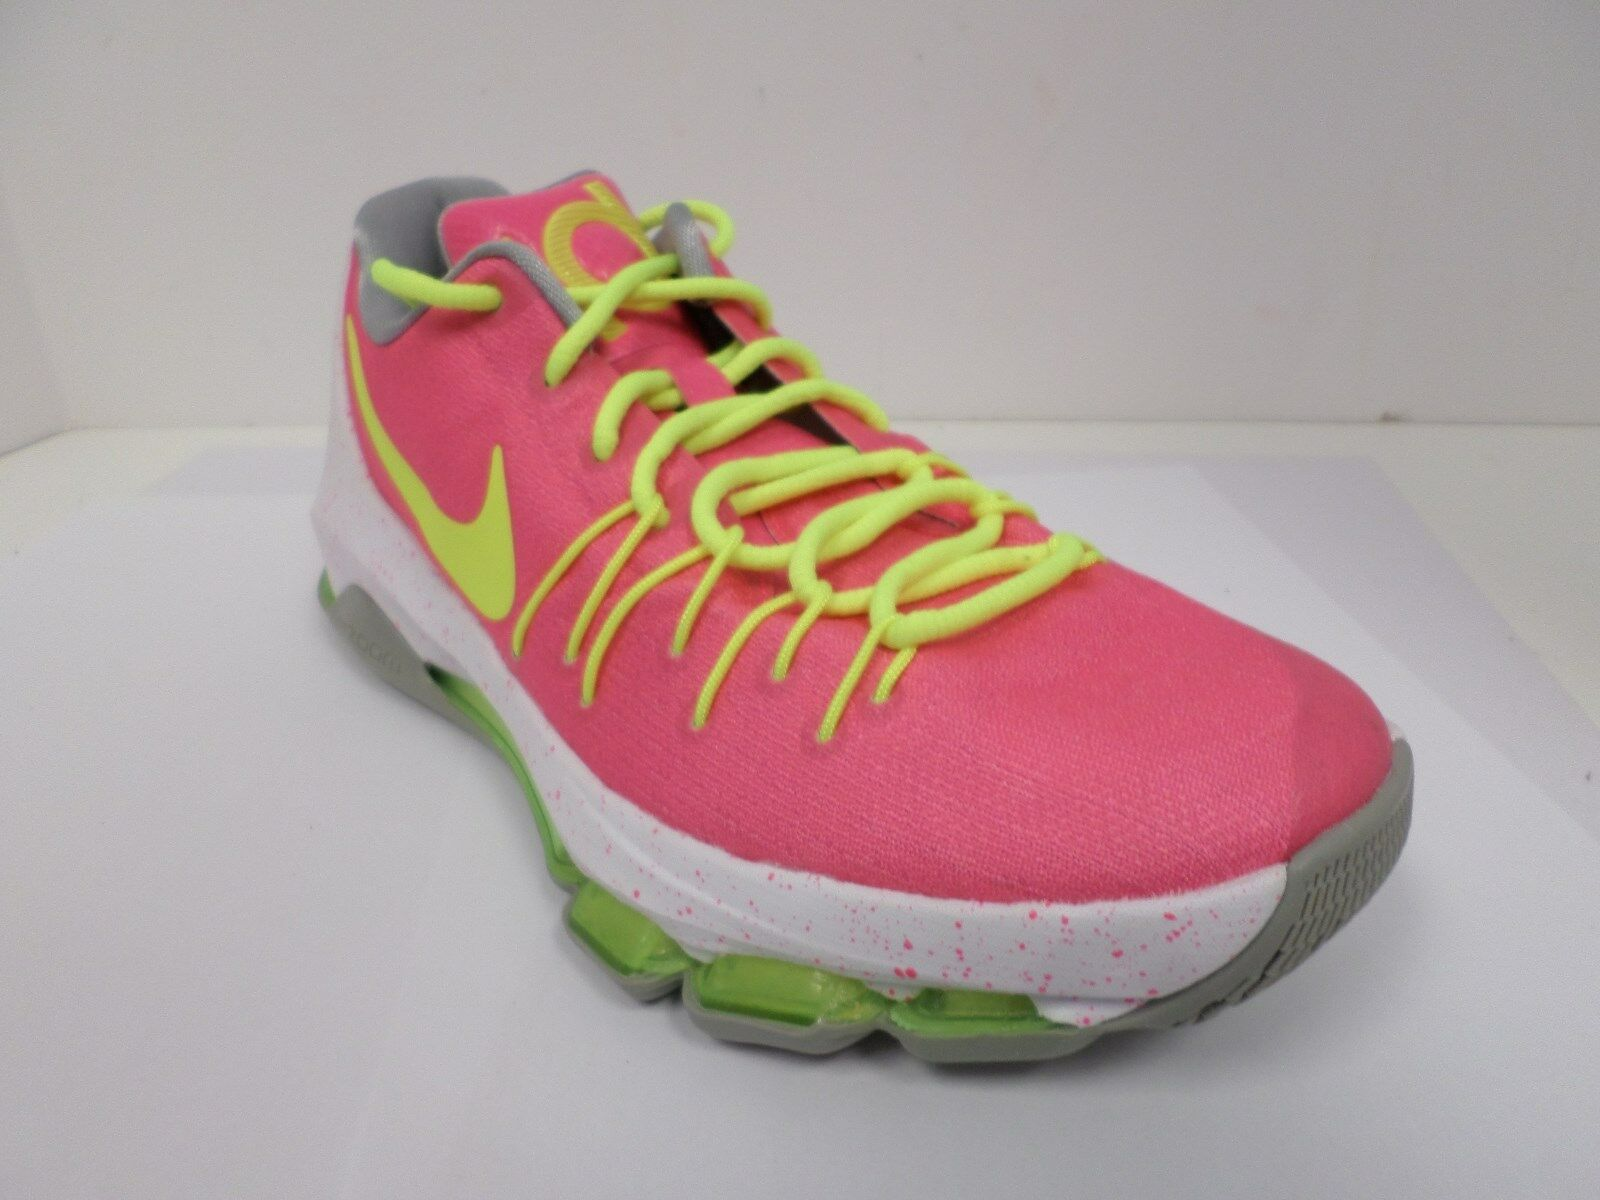 New Nike Women's iD KD Athletic Shoes Pink/Volt/White/Gray 828368-901 ***